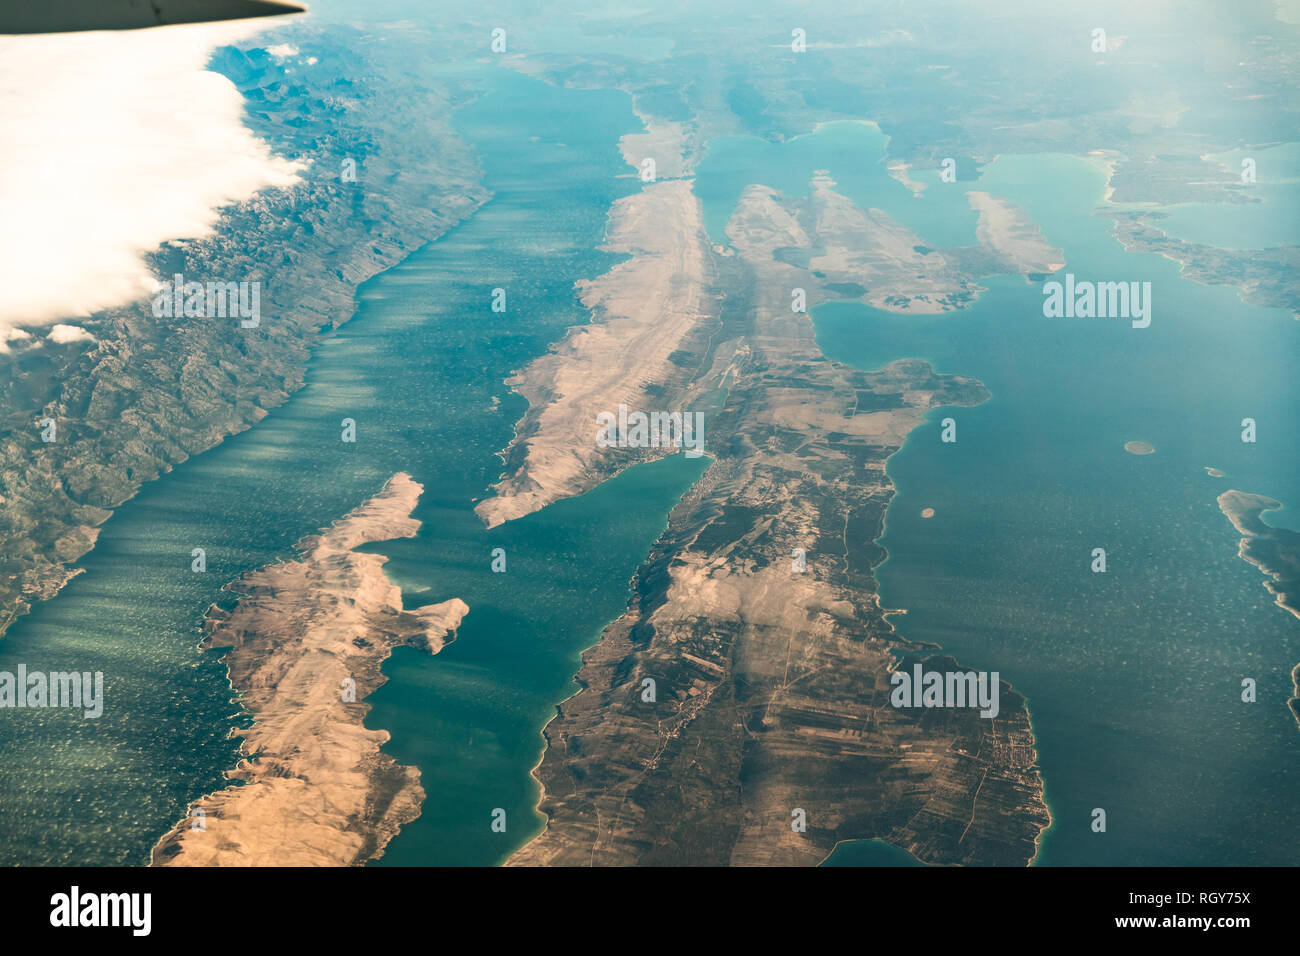 Croatia. Aerial View Of Island Pag In Adriatic Sea From Window Of Plane. Stock Photo